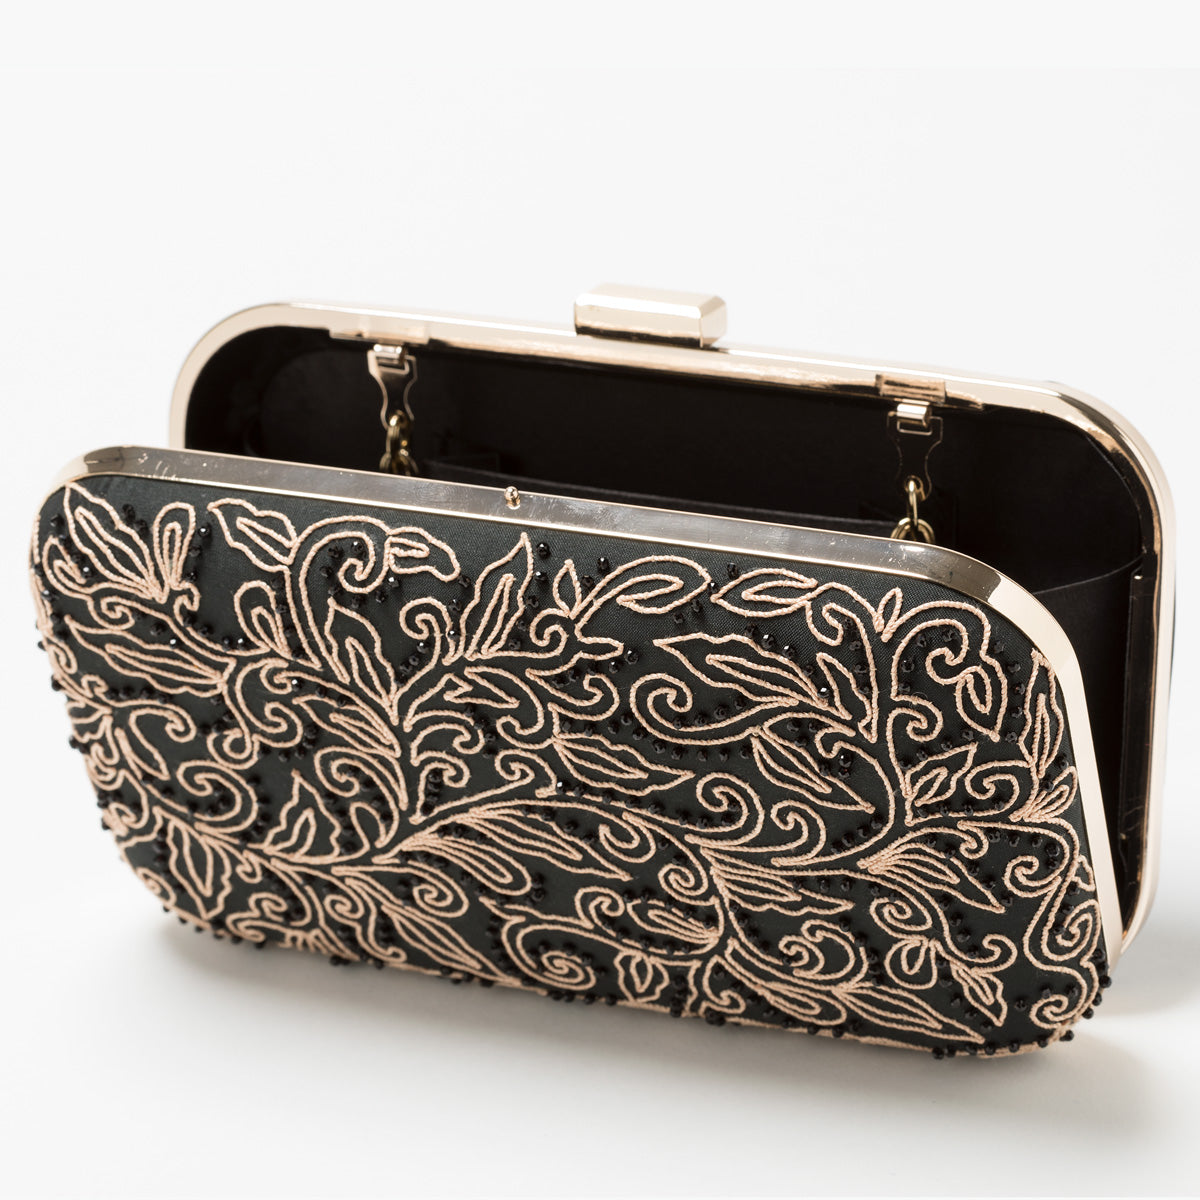 Lori Weitzner Athena Clutch, Bag with Embroidery, Beading, and hidden Chain